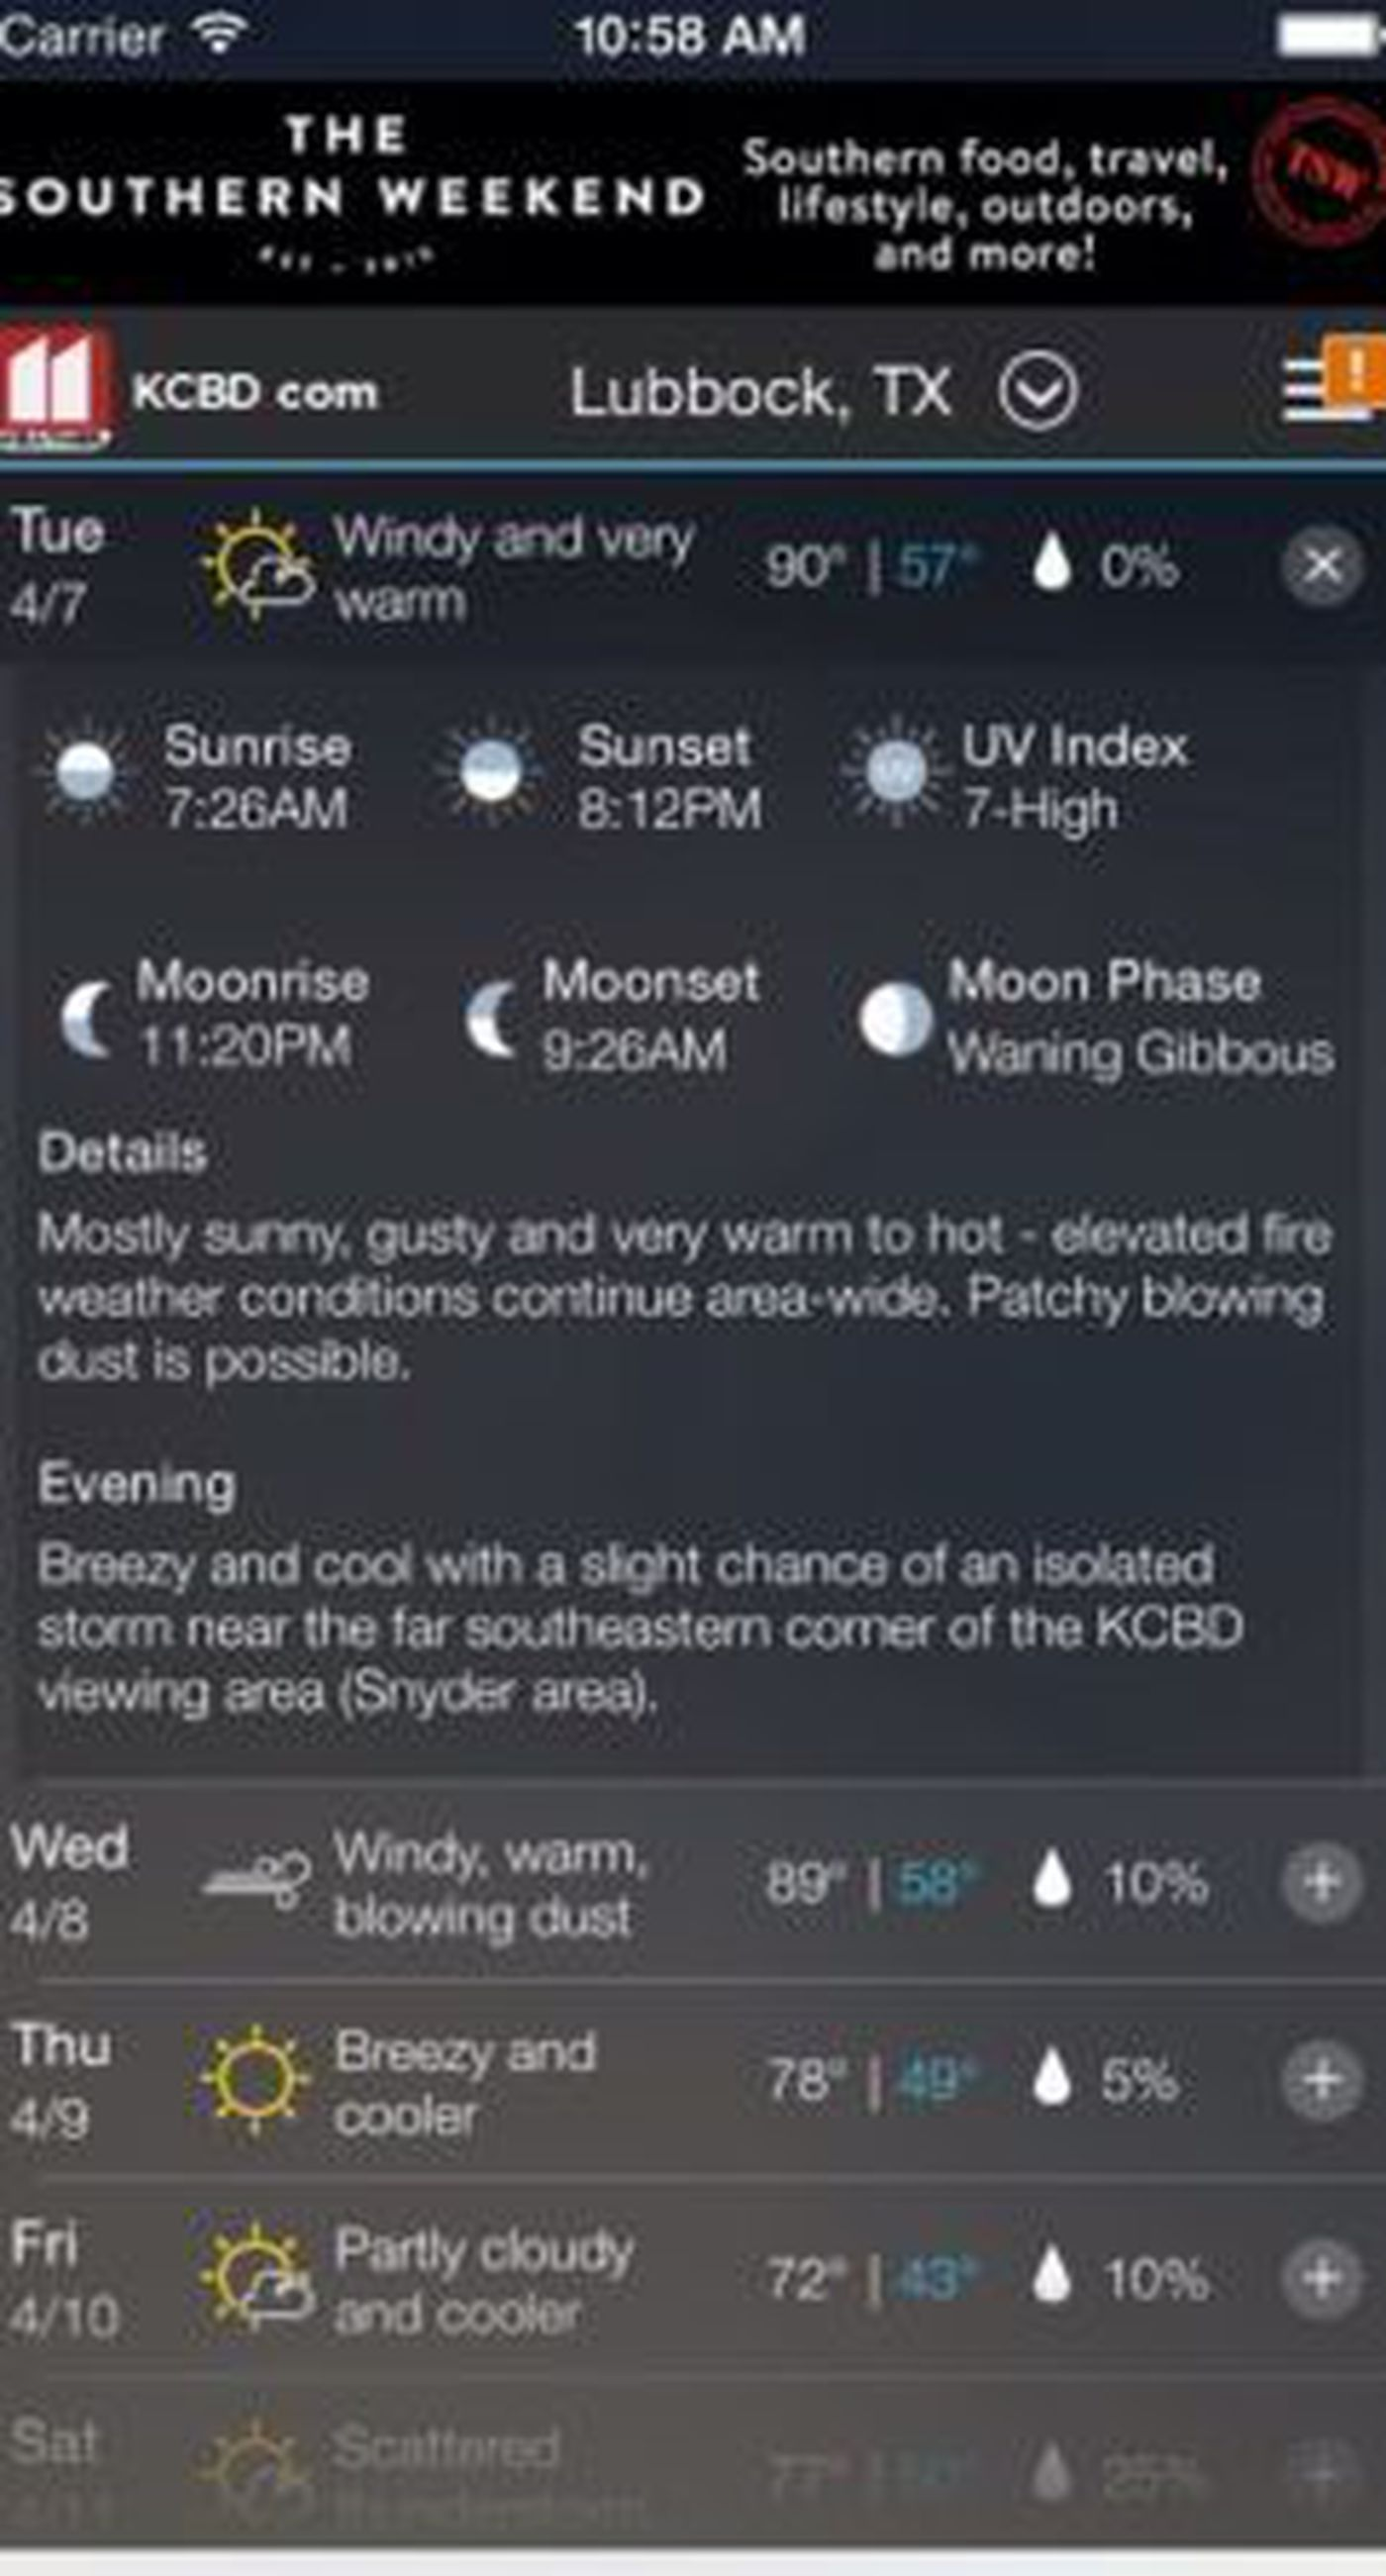 New And Improved Kcbd Weather App Now Available For Download